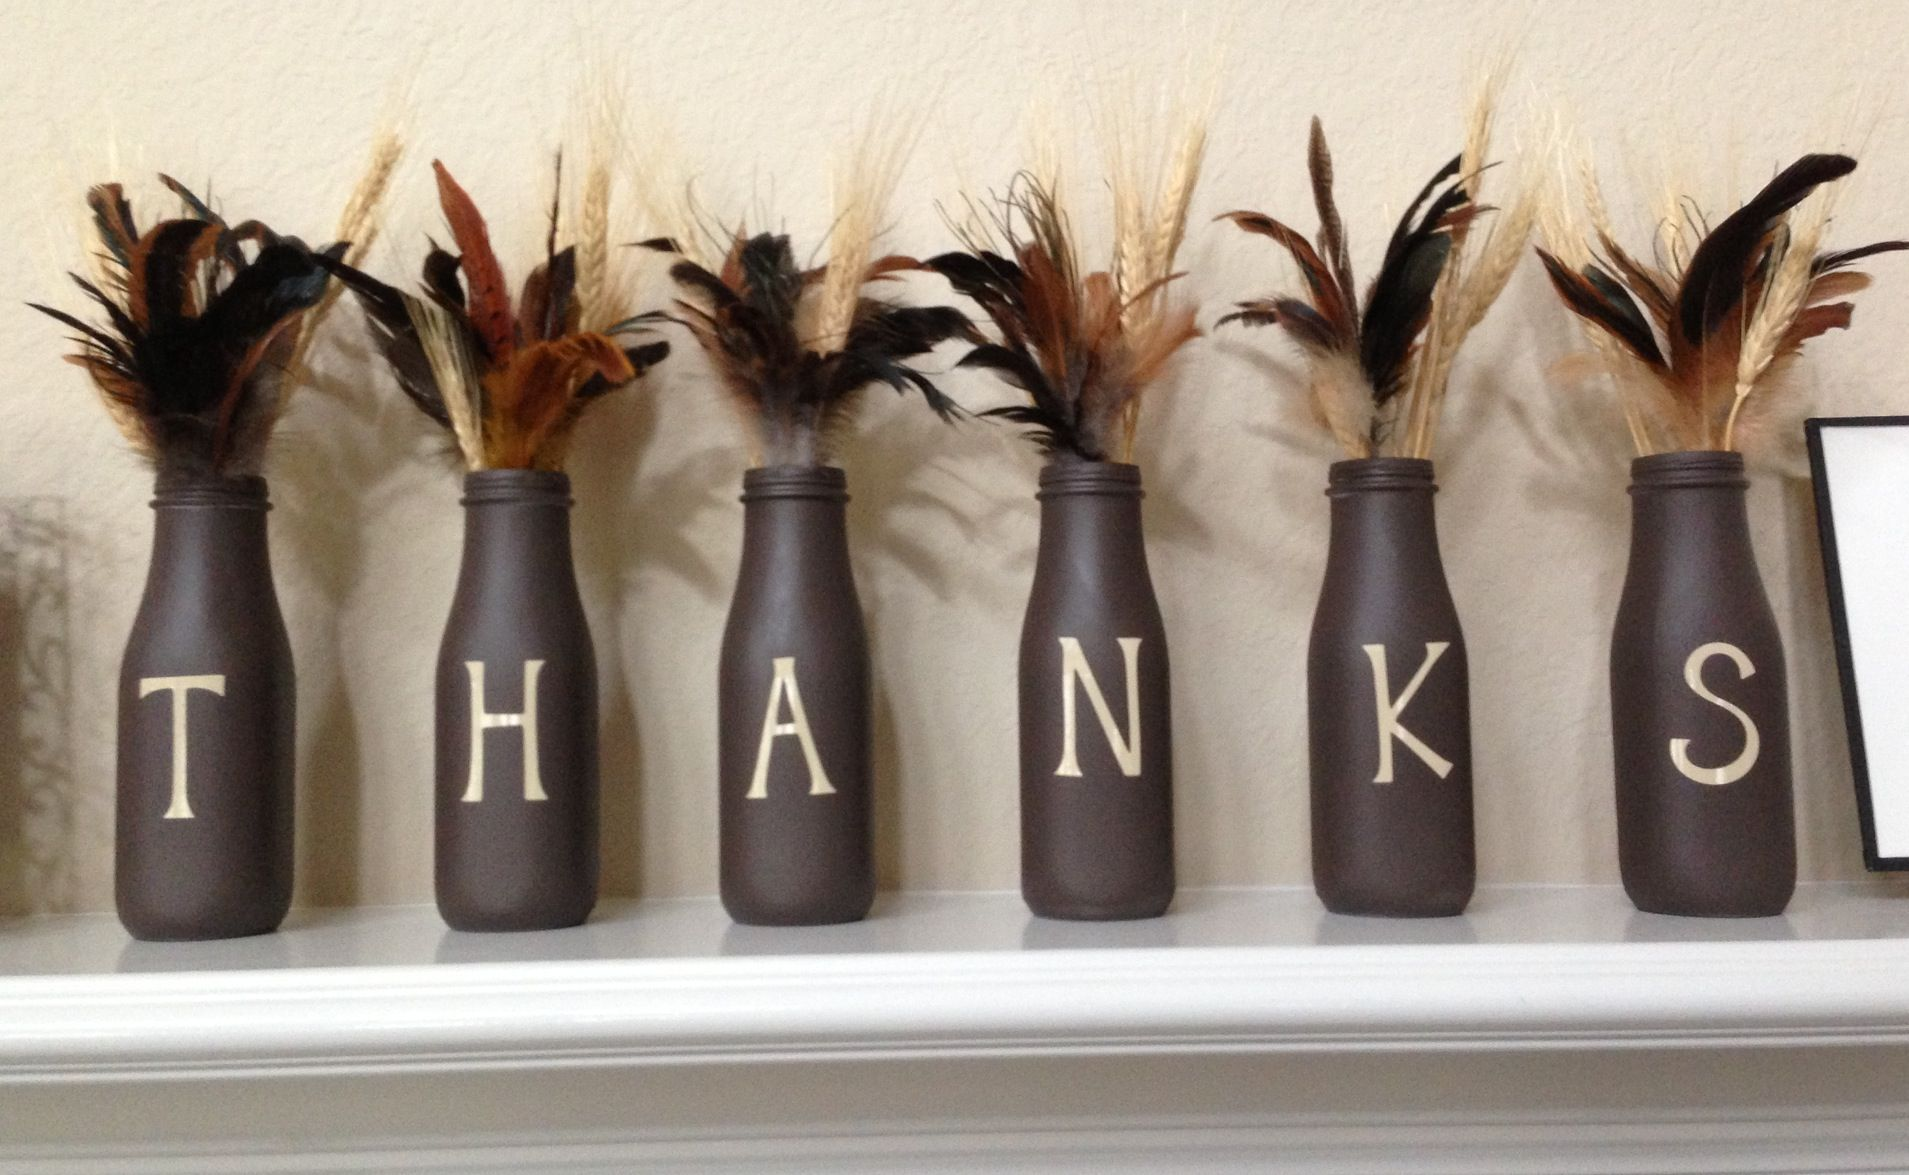 I Made These With Starbucks Bottles Brown Spray Paint And Vinyl Letters From My Circuit Starbucks Bottle Crafts Starbucks Bottles Crafts With Glass Jars